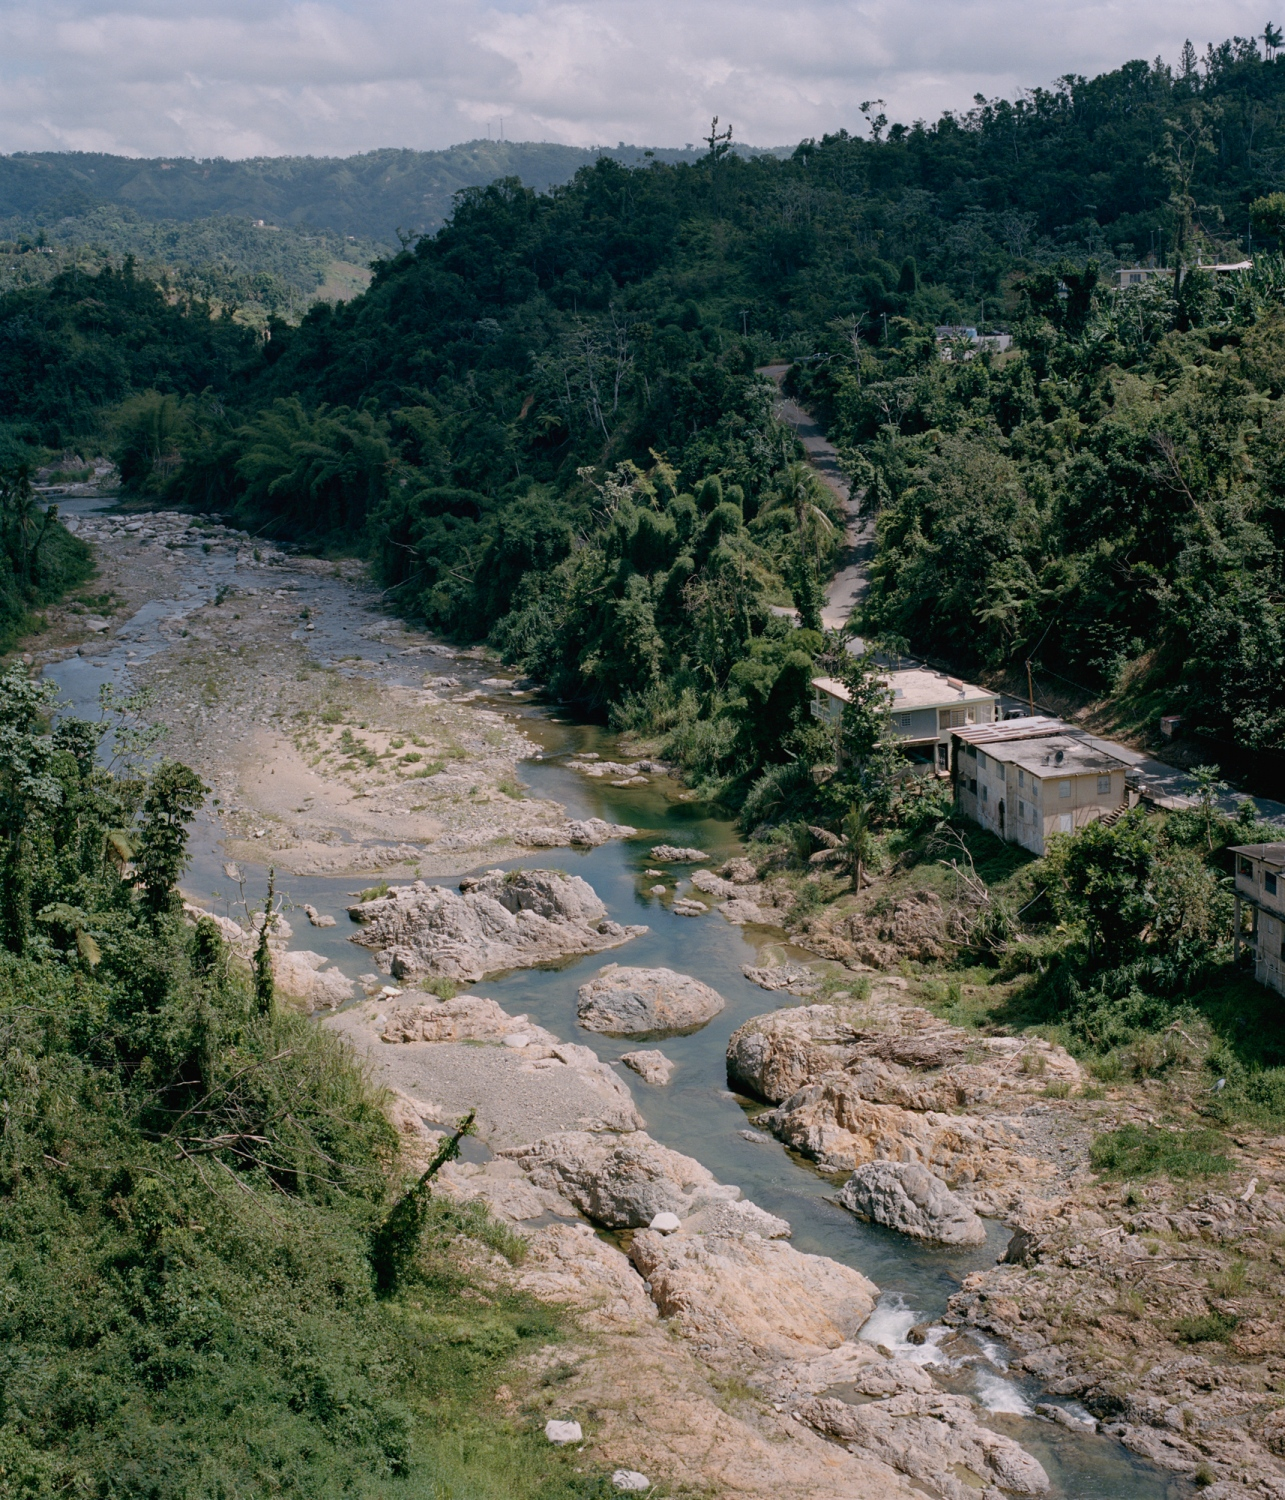 The Pelleja River flows alongside the barrio Arenas in Utuado ten months after the storm, with much of the vegetation having grown back.  Utuado, Puerto Rico, July 2018.